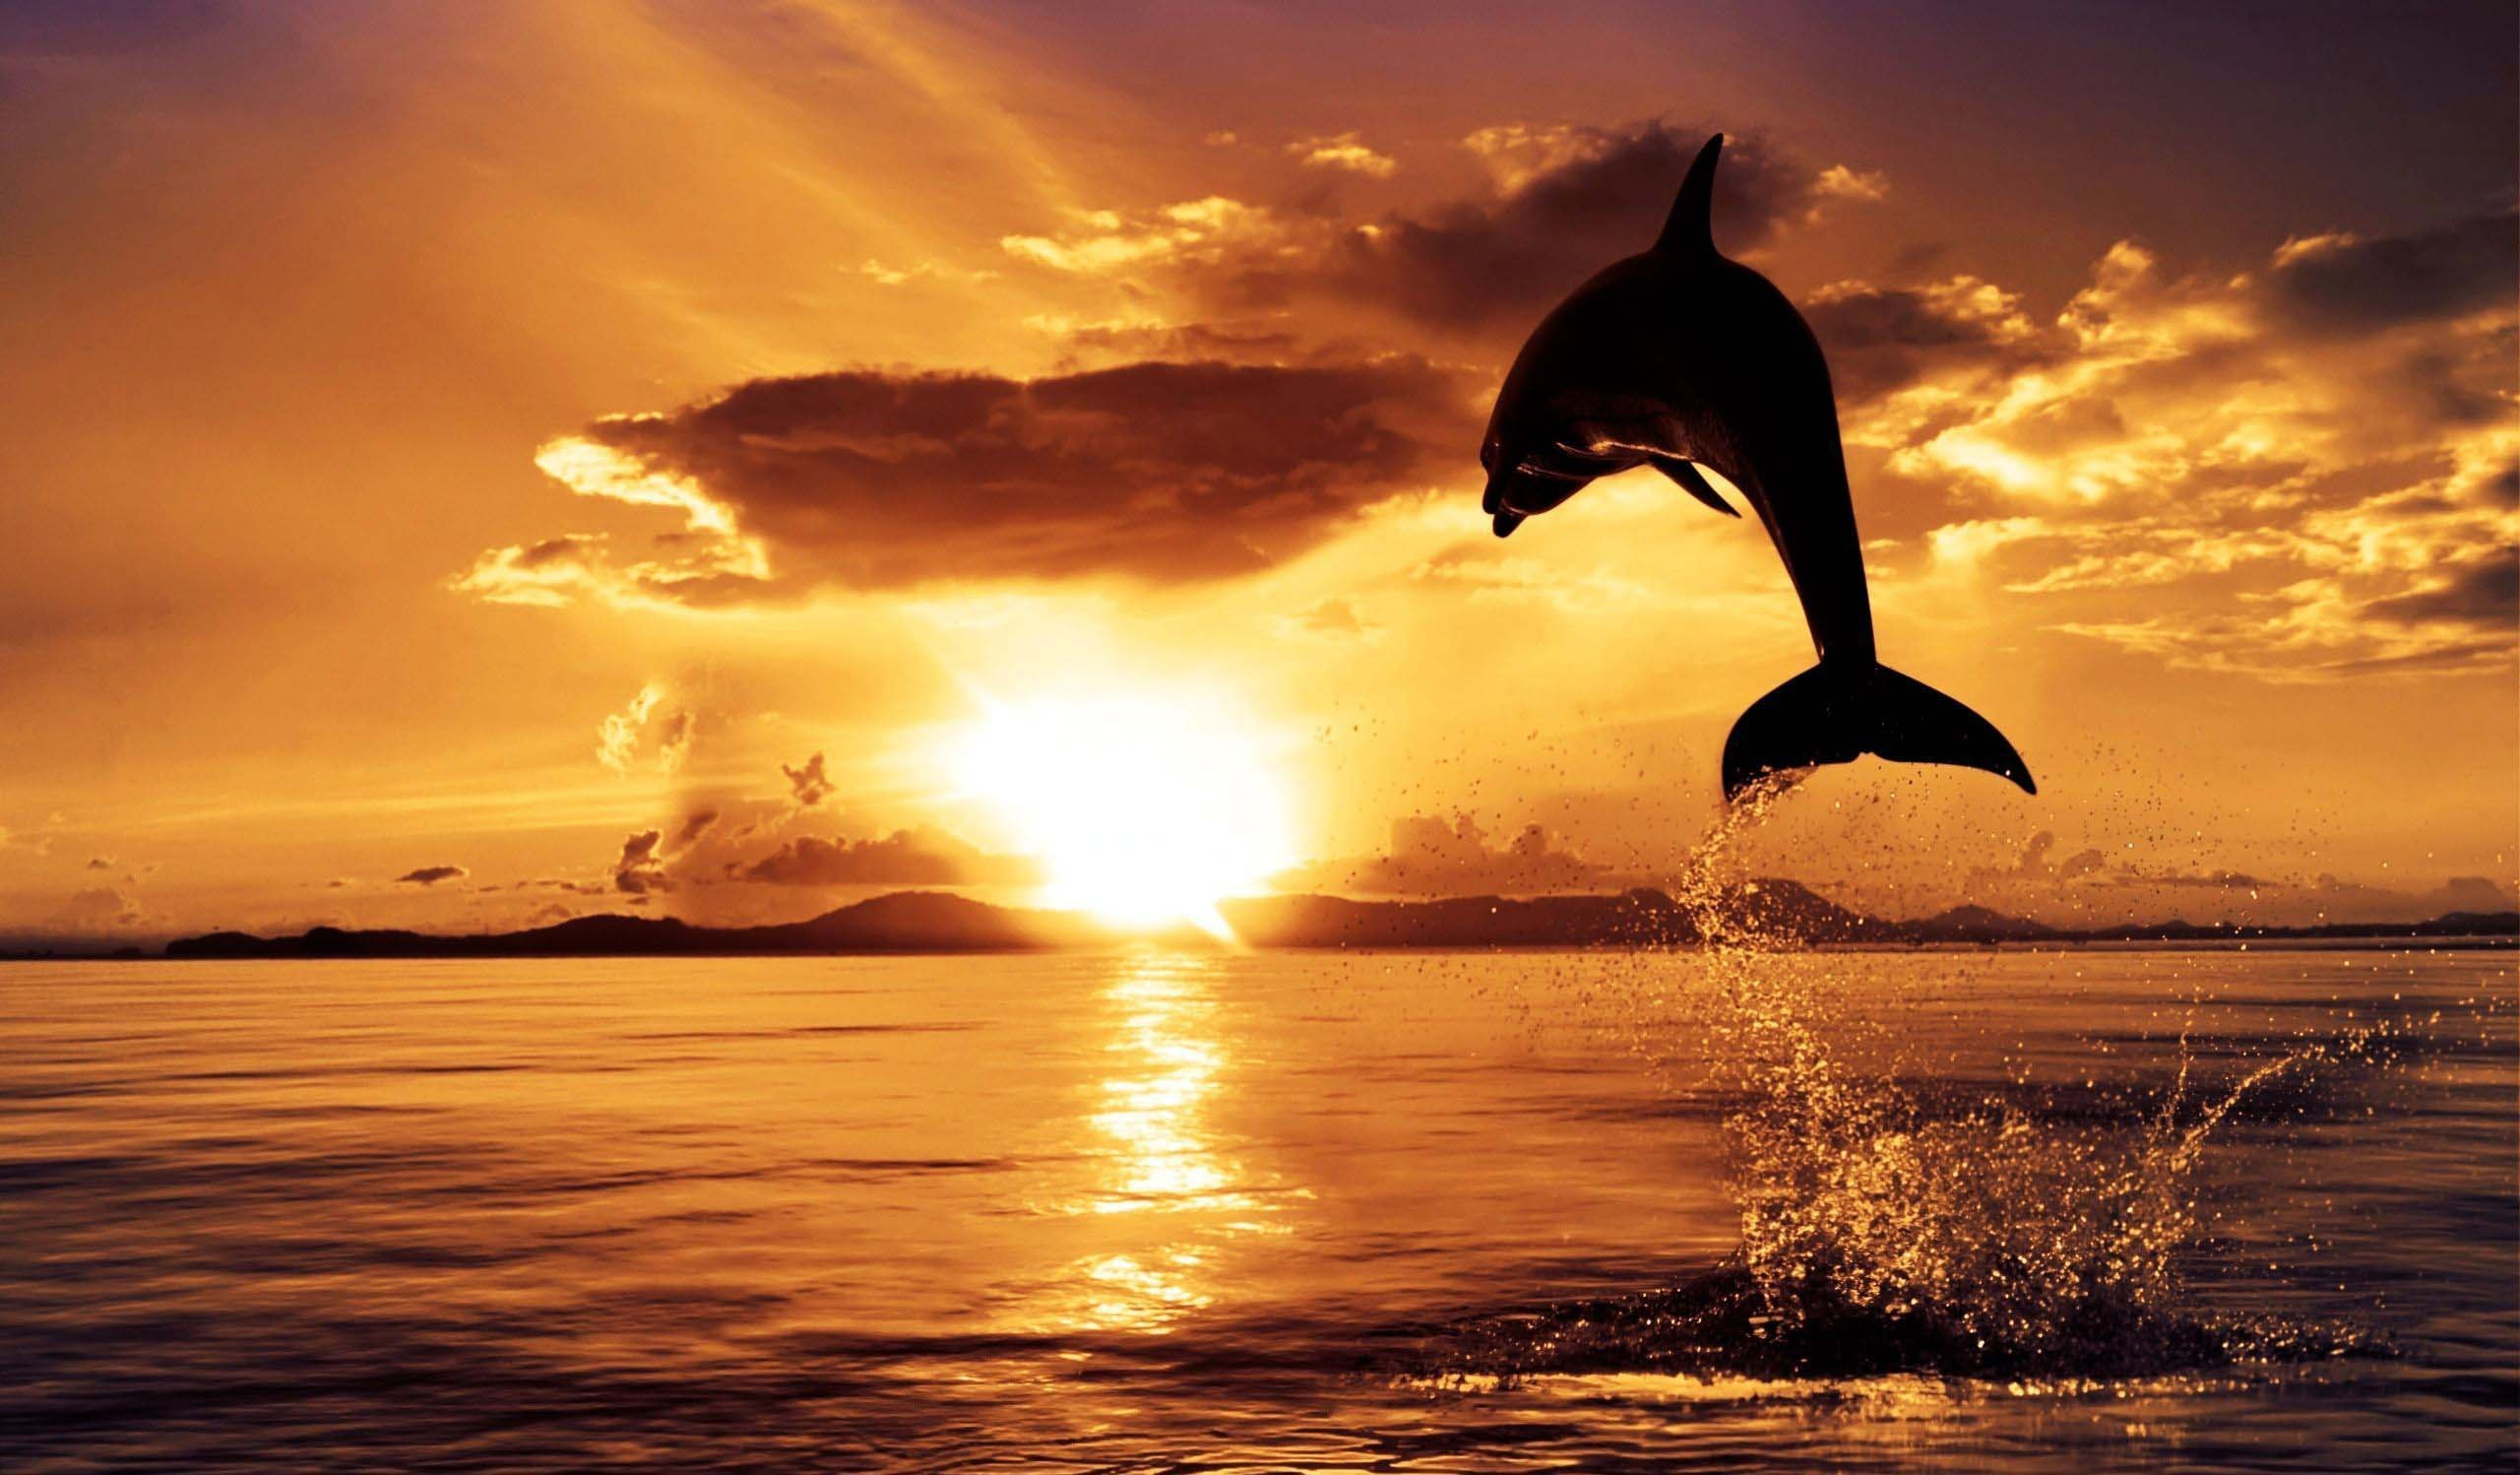 Ocean Sunset Wallpapers Images Photos Pictures Backgrounds 2560x1498